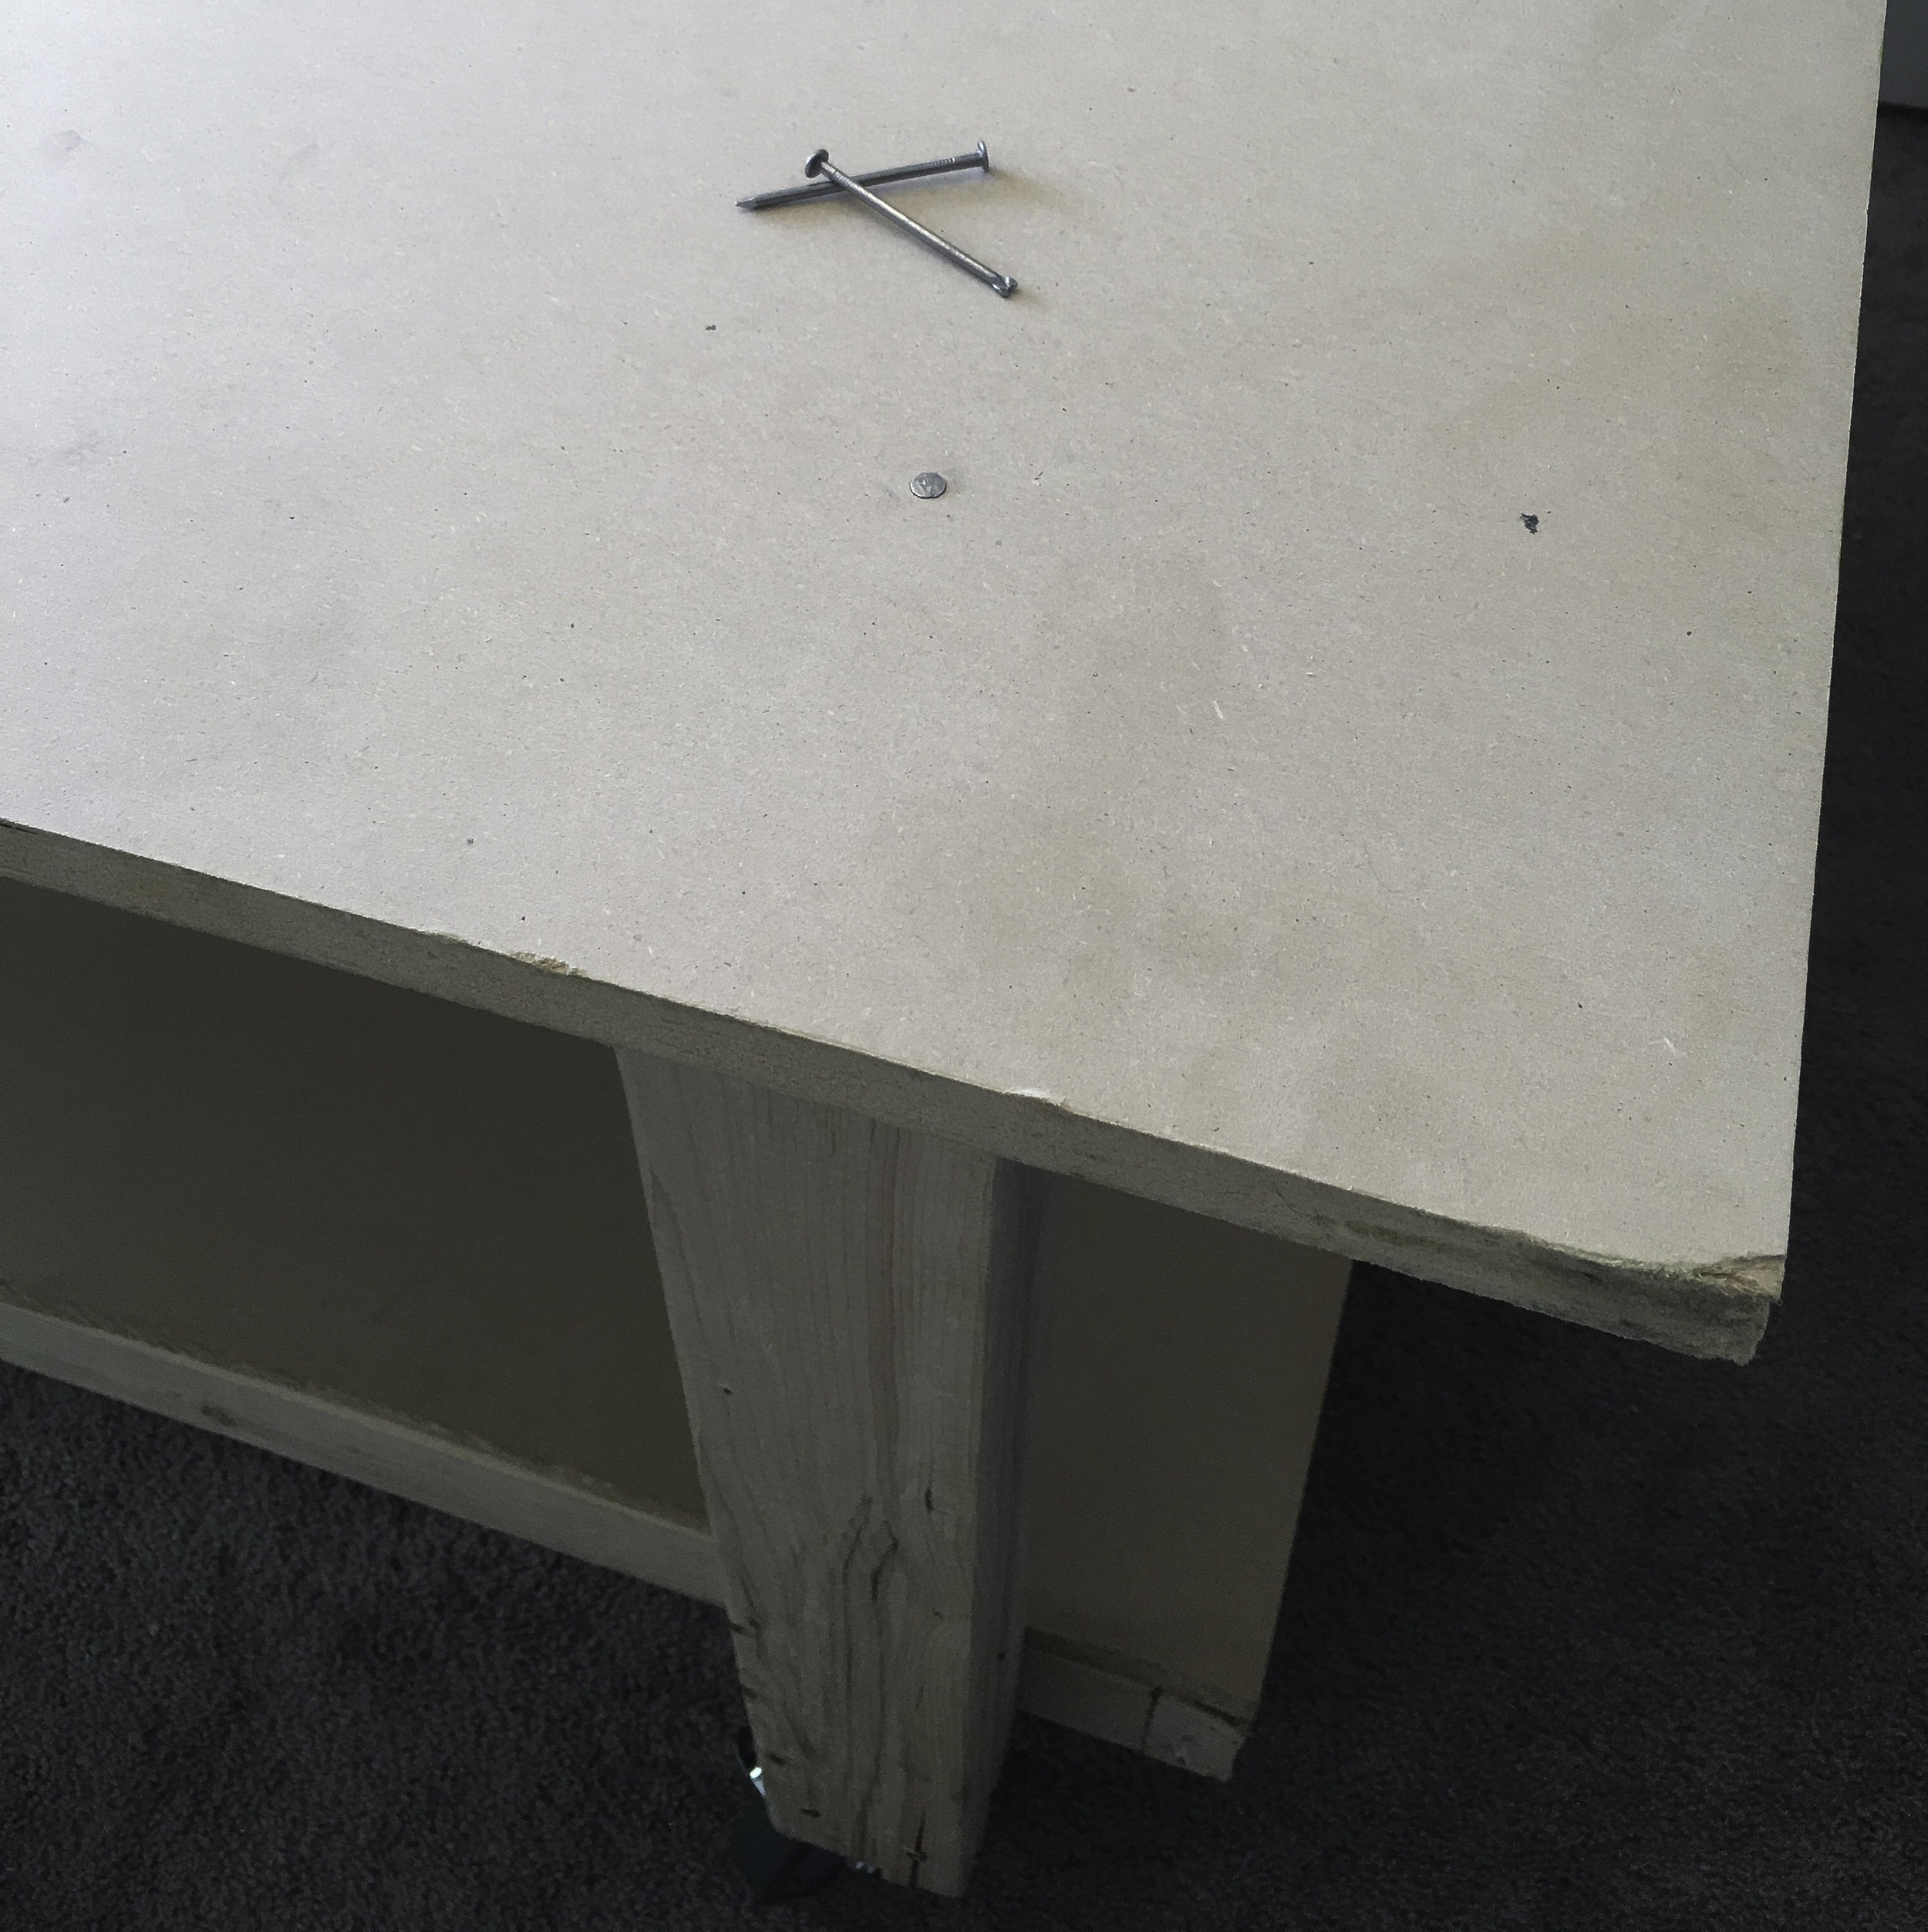 Be sure to nail your MDF board to your table base. Screwing it will cause it to crack and split.